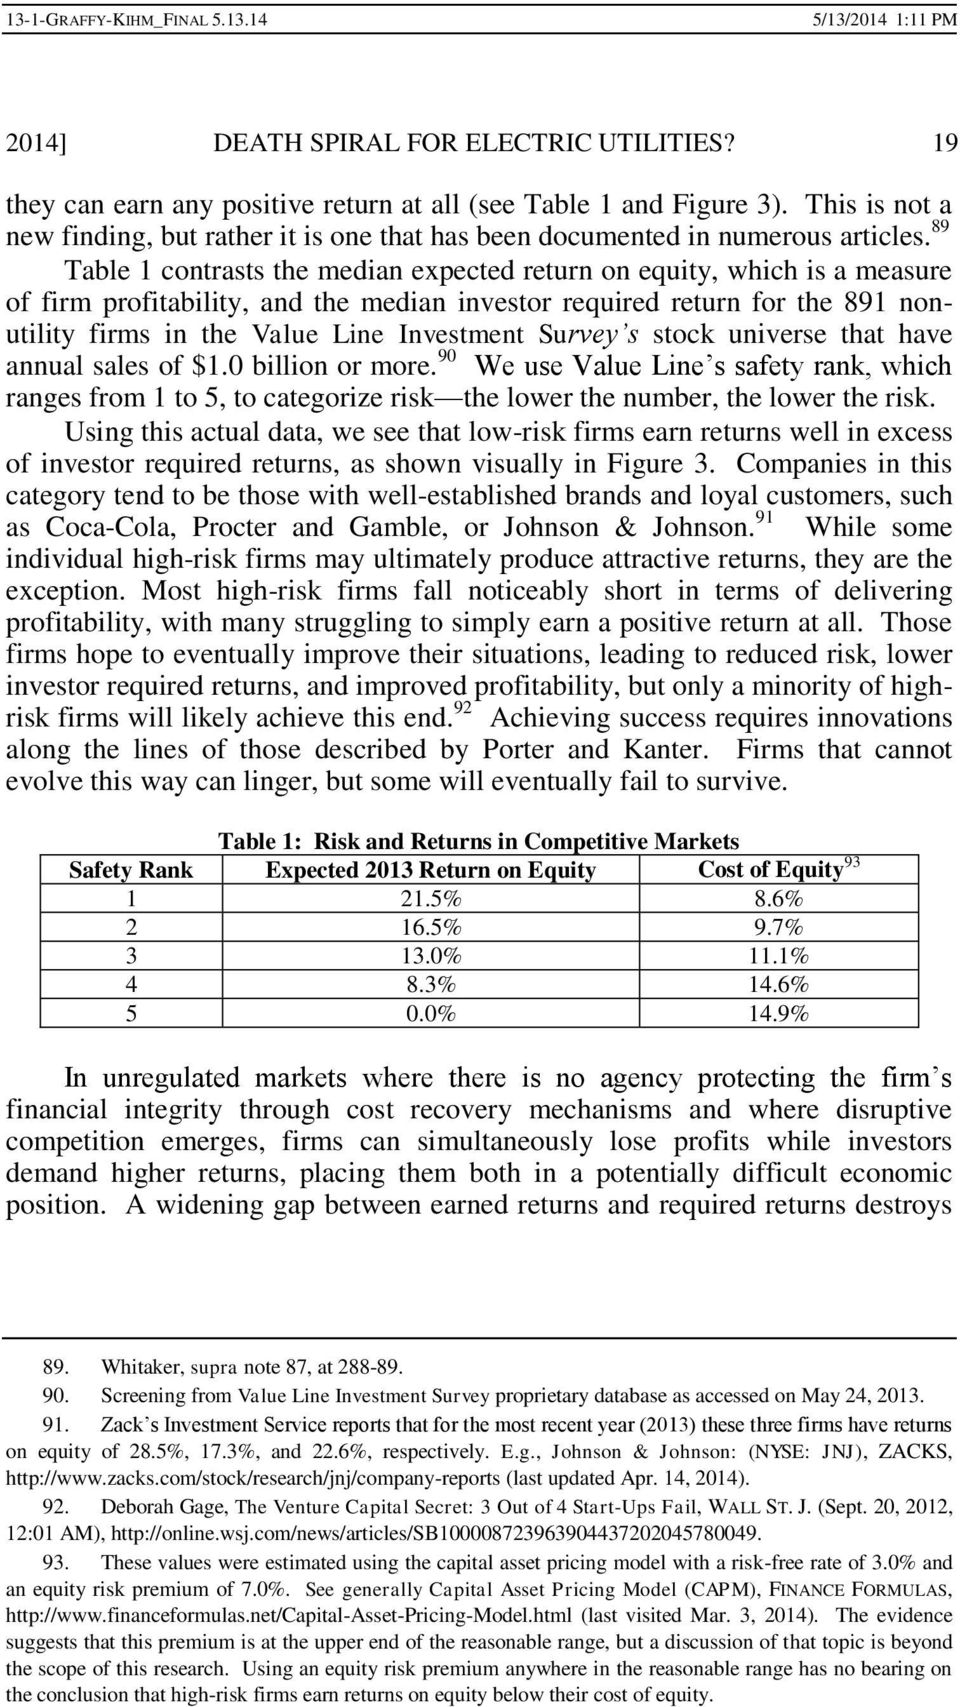 89 Table 1 contrasts the median expected return on equity, which is a measure of firm profitability, and the median investor required return for the 891 nonutility firms in the Value Line Investment